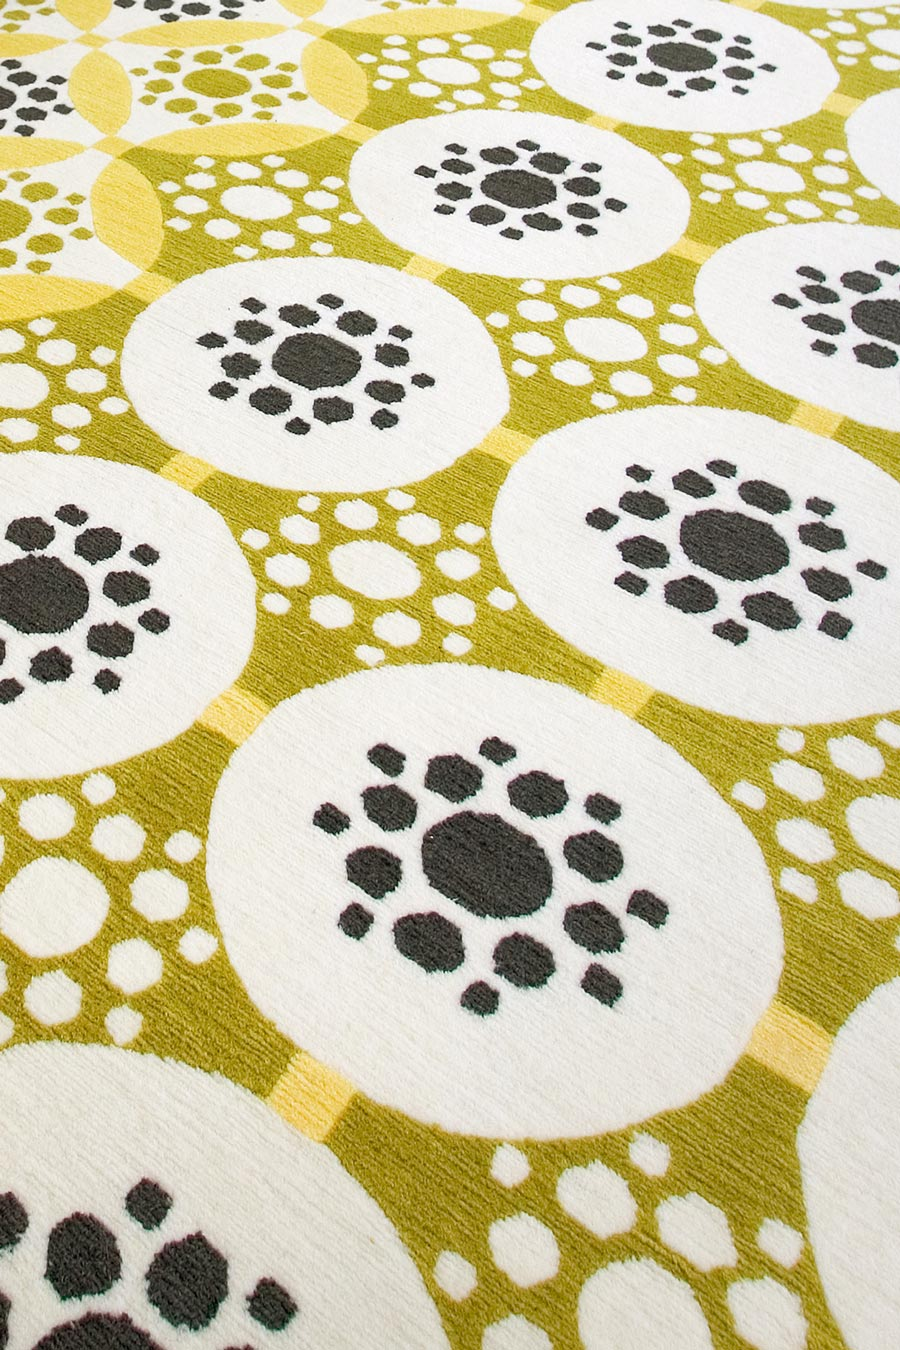 close up of applique rug by bernabeifreeman in yellow circular pattern